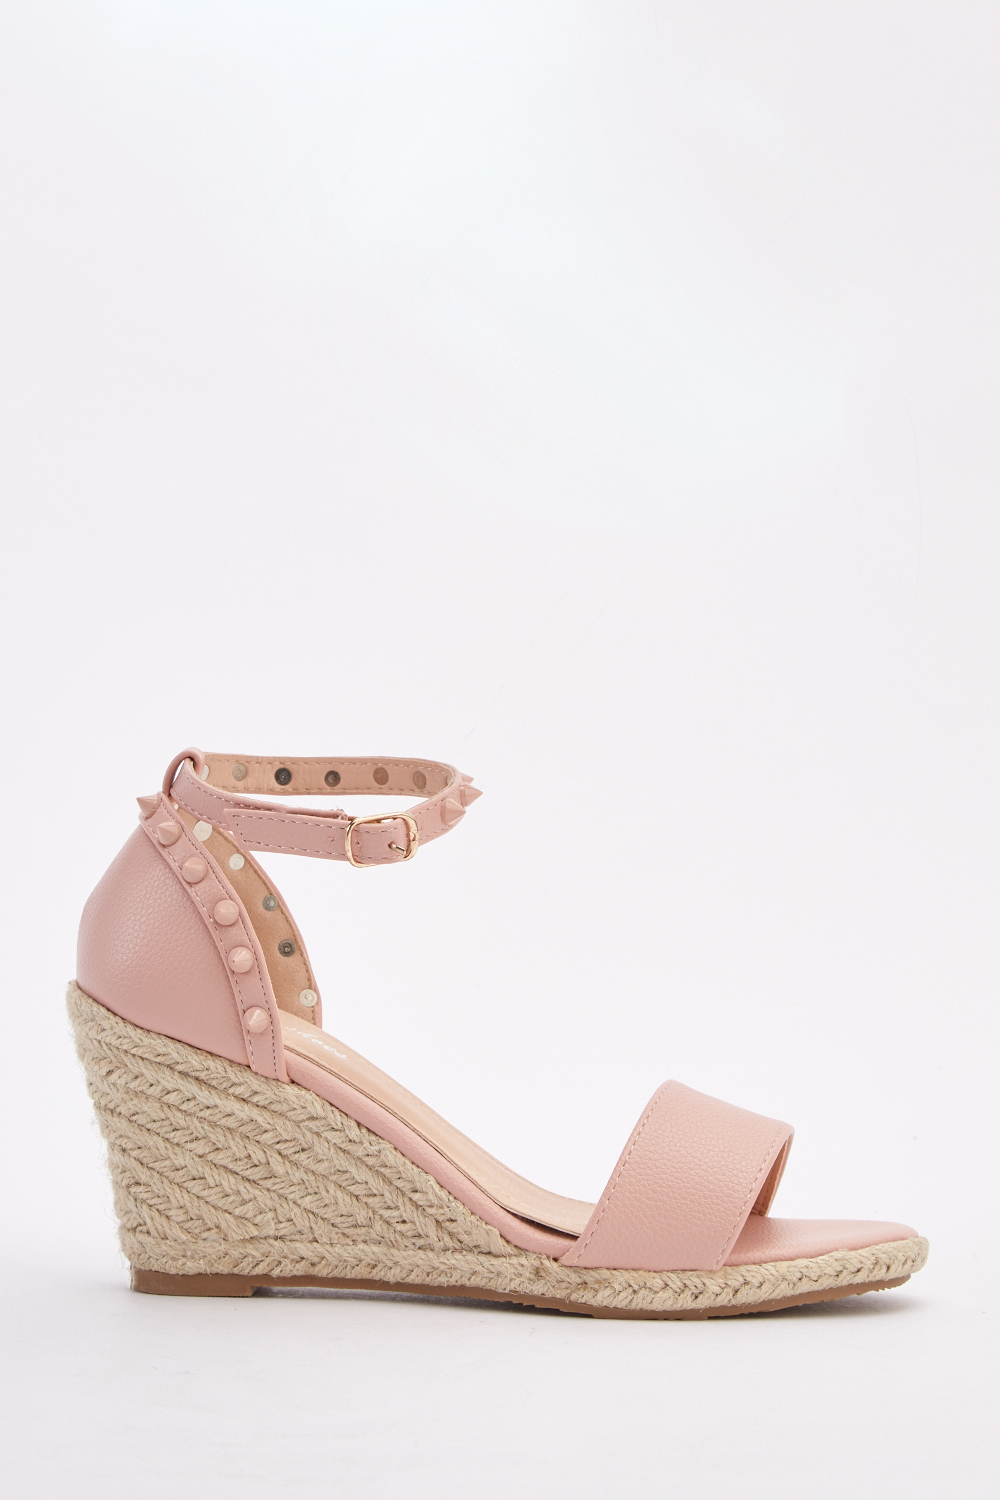 4b59340df11 Studded Espadrille Wedge Sandals - Just £5